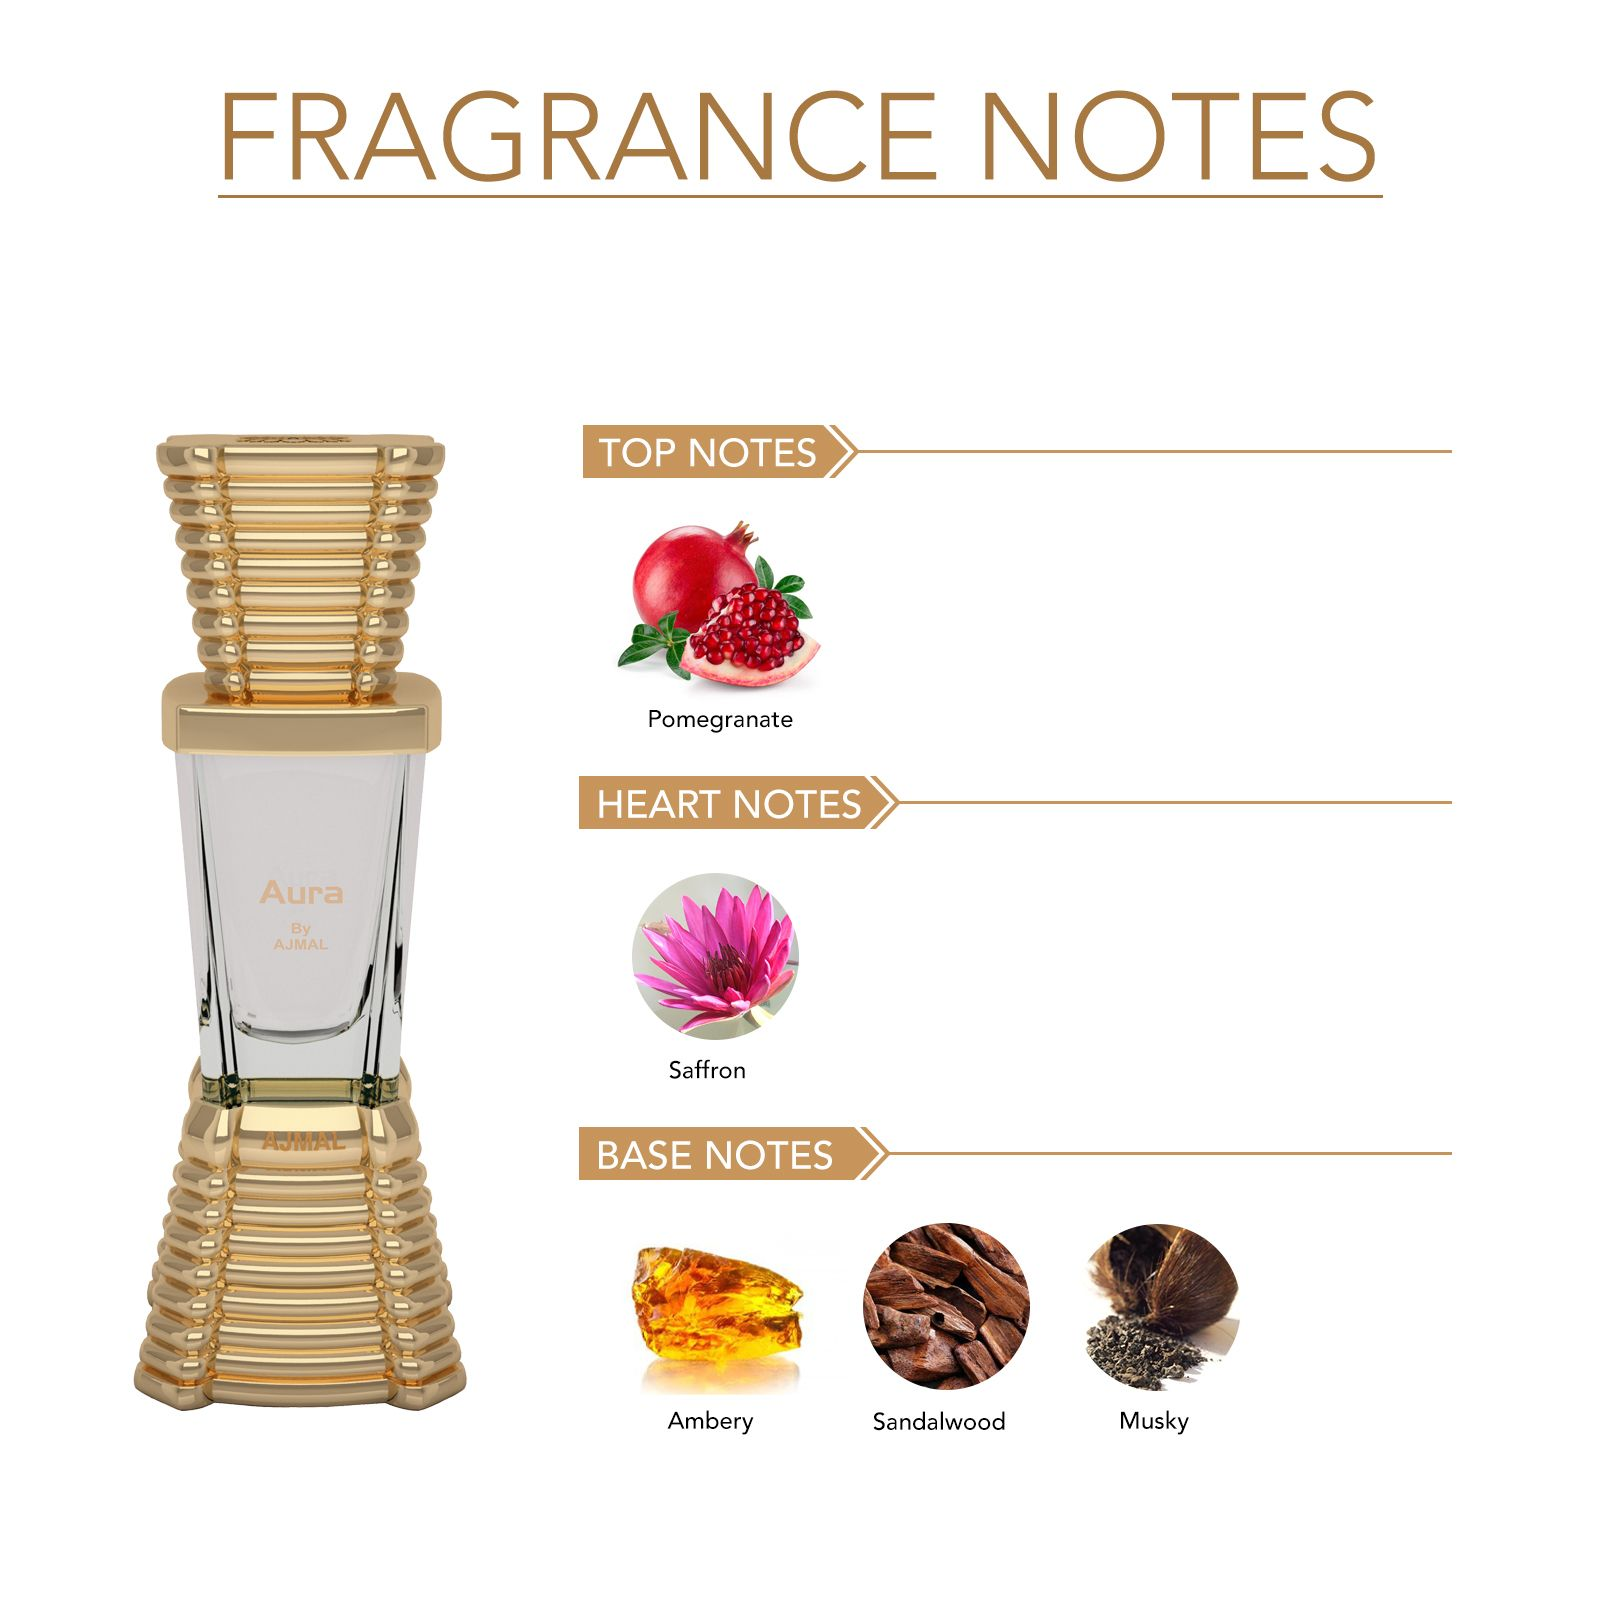 Ajmal | Ajmal Aura Concentrated Perfume Oil Floral Fruity Alcohol-free Attar 10ml for Unisex and Avid Homme Deodorant Aquatic Woody Fragrance 200ml for Men + 2 Parfum Testers FREE